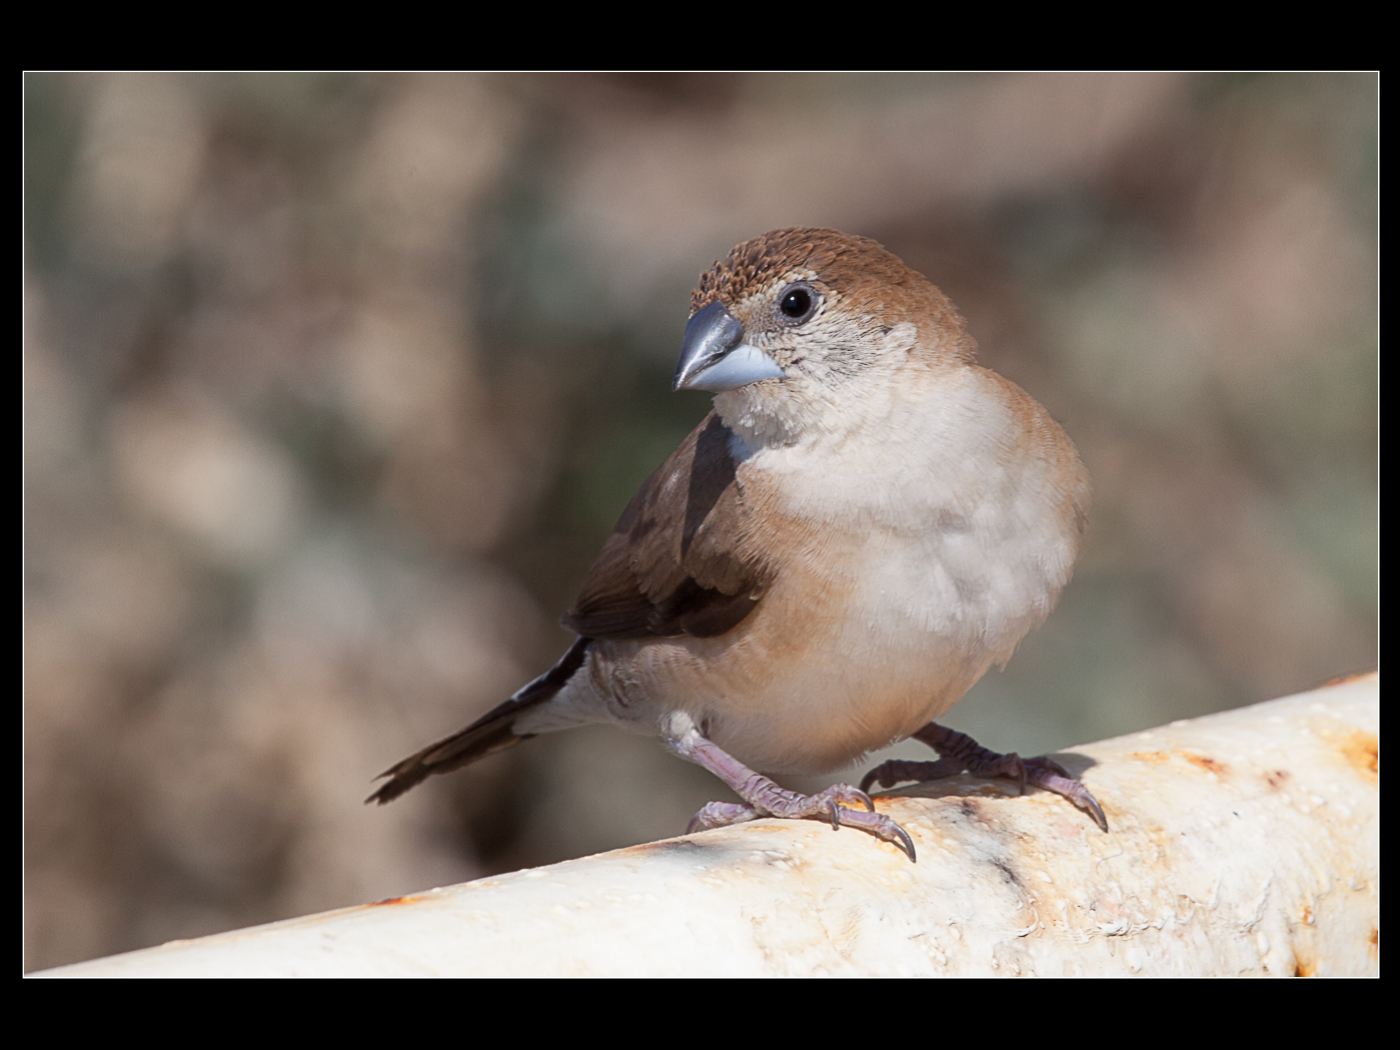 015 Young sparrow in Nice.jpg